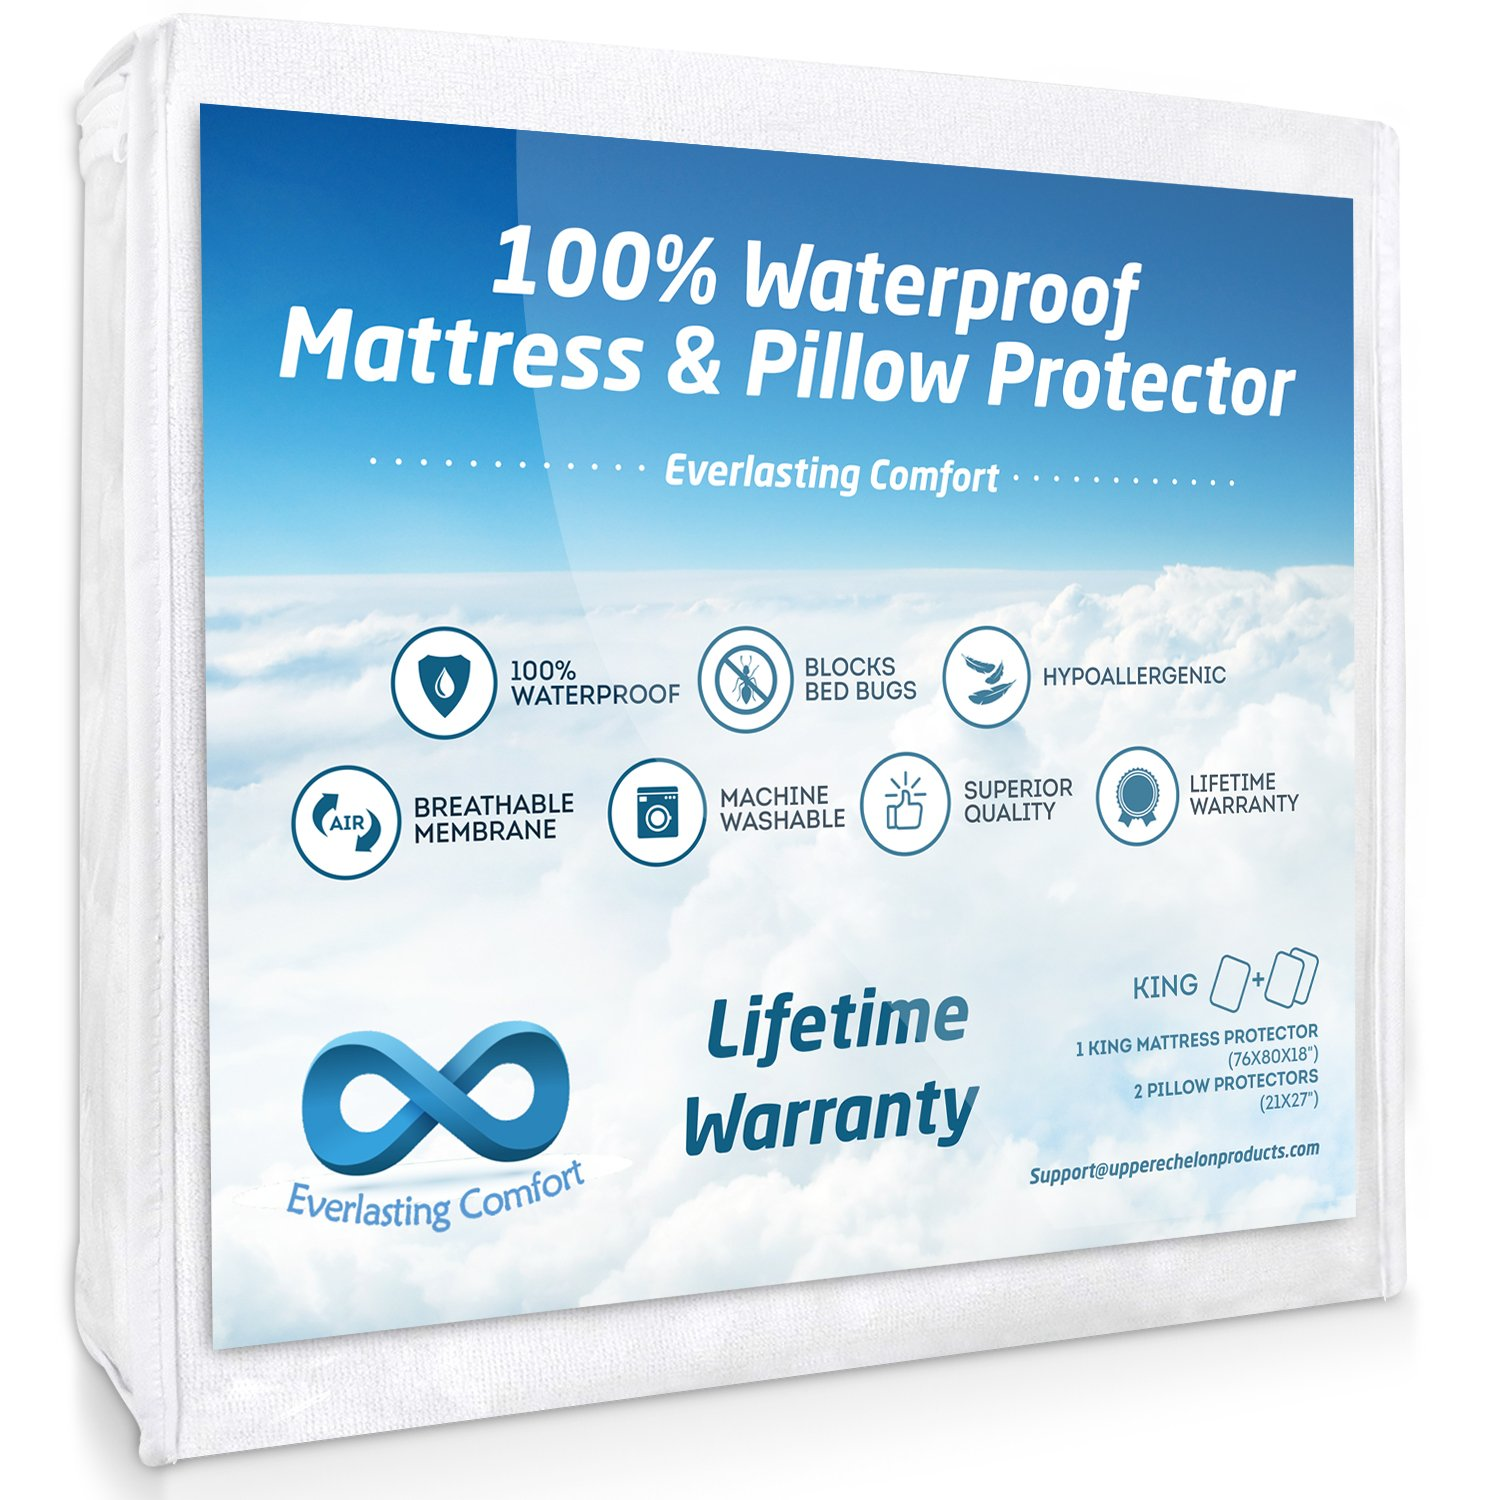 100% Waterproof Mattress Protector (King) and 2 Free Pillow Protectors. Complete Set, Hypoallergenic, Breathable Membrane by Everlasting Comfort